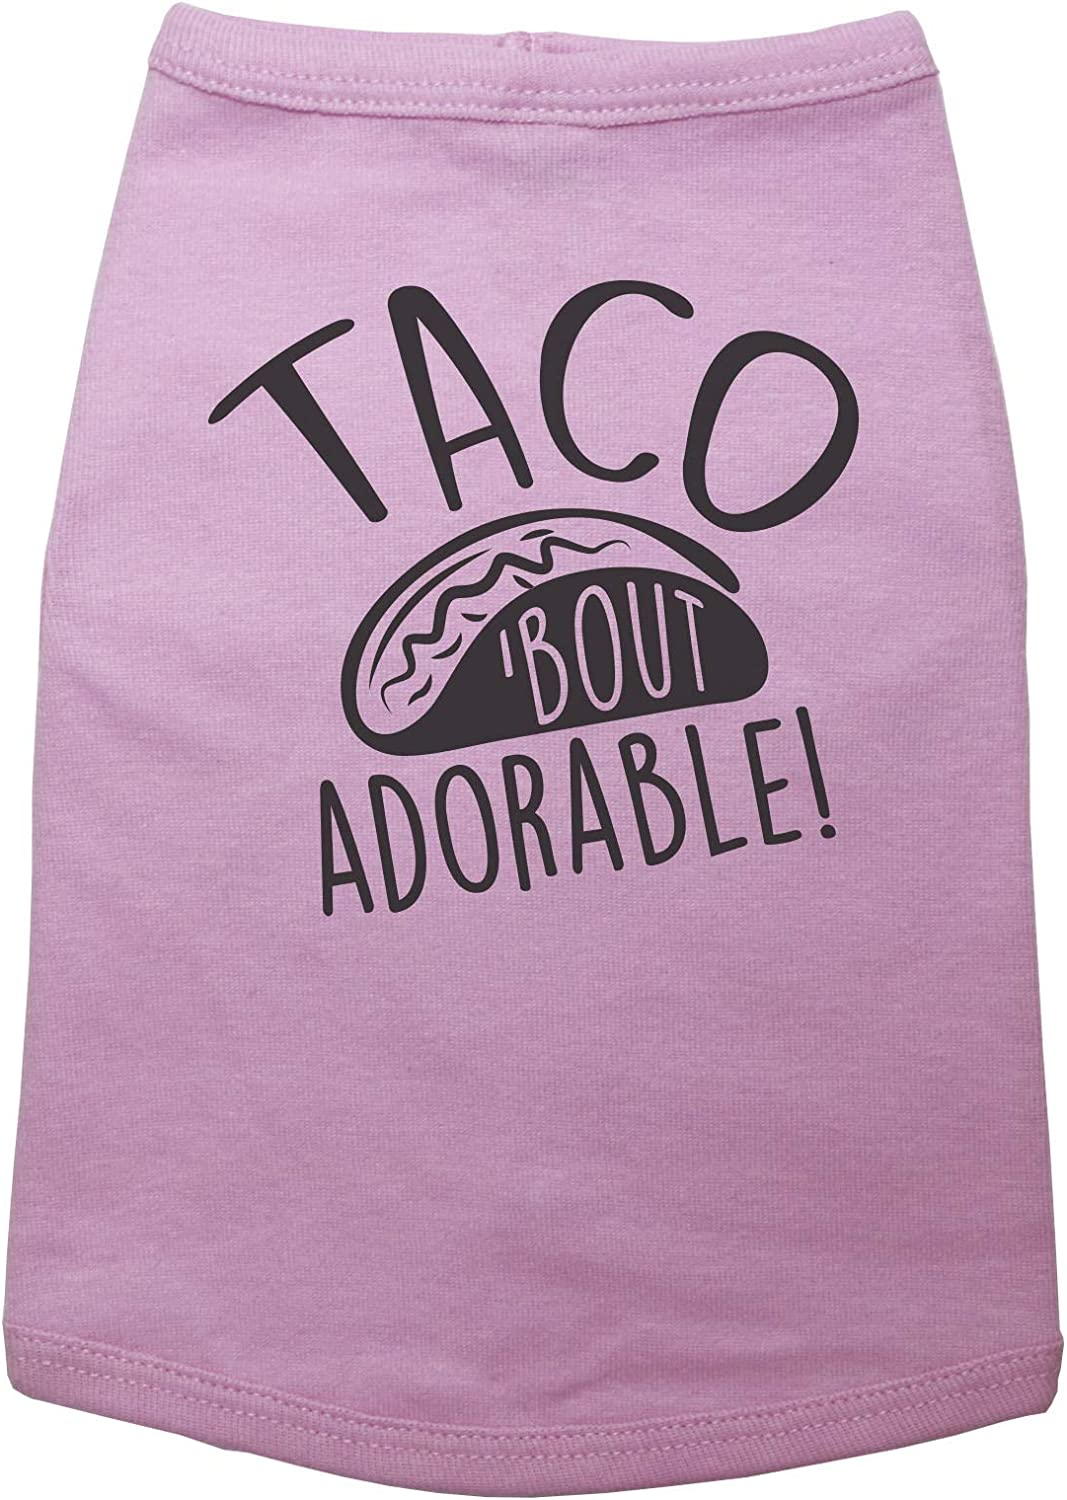 Baffle Dog Shirt, Tacos, Taco Bout Adorable, Baby Announcement, Trendy, Puppy Dog Outfit, Food, Cute Dog Shirt, Trendy Dog Tee